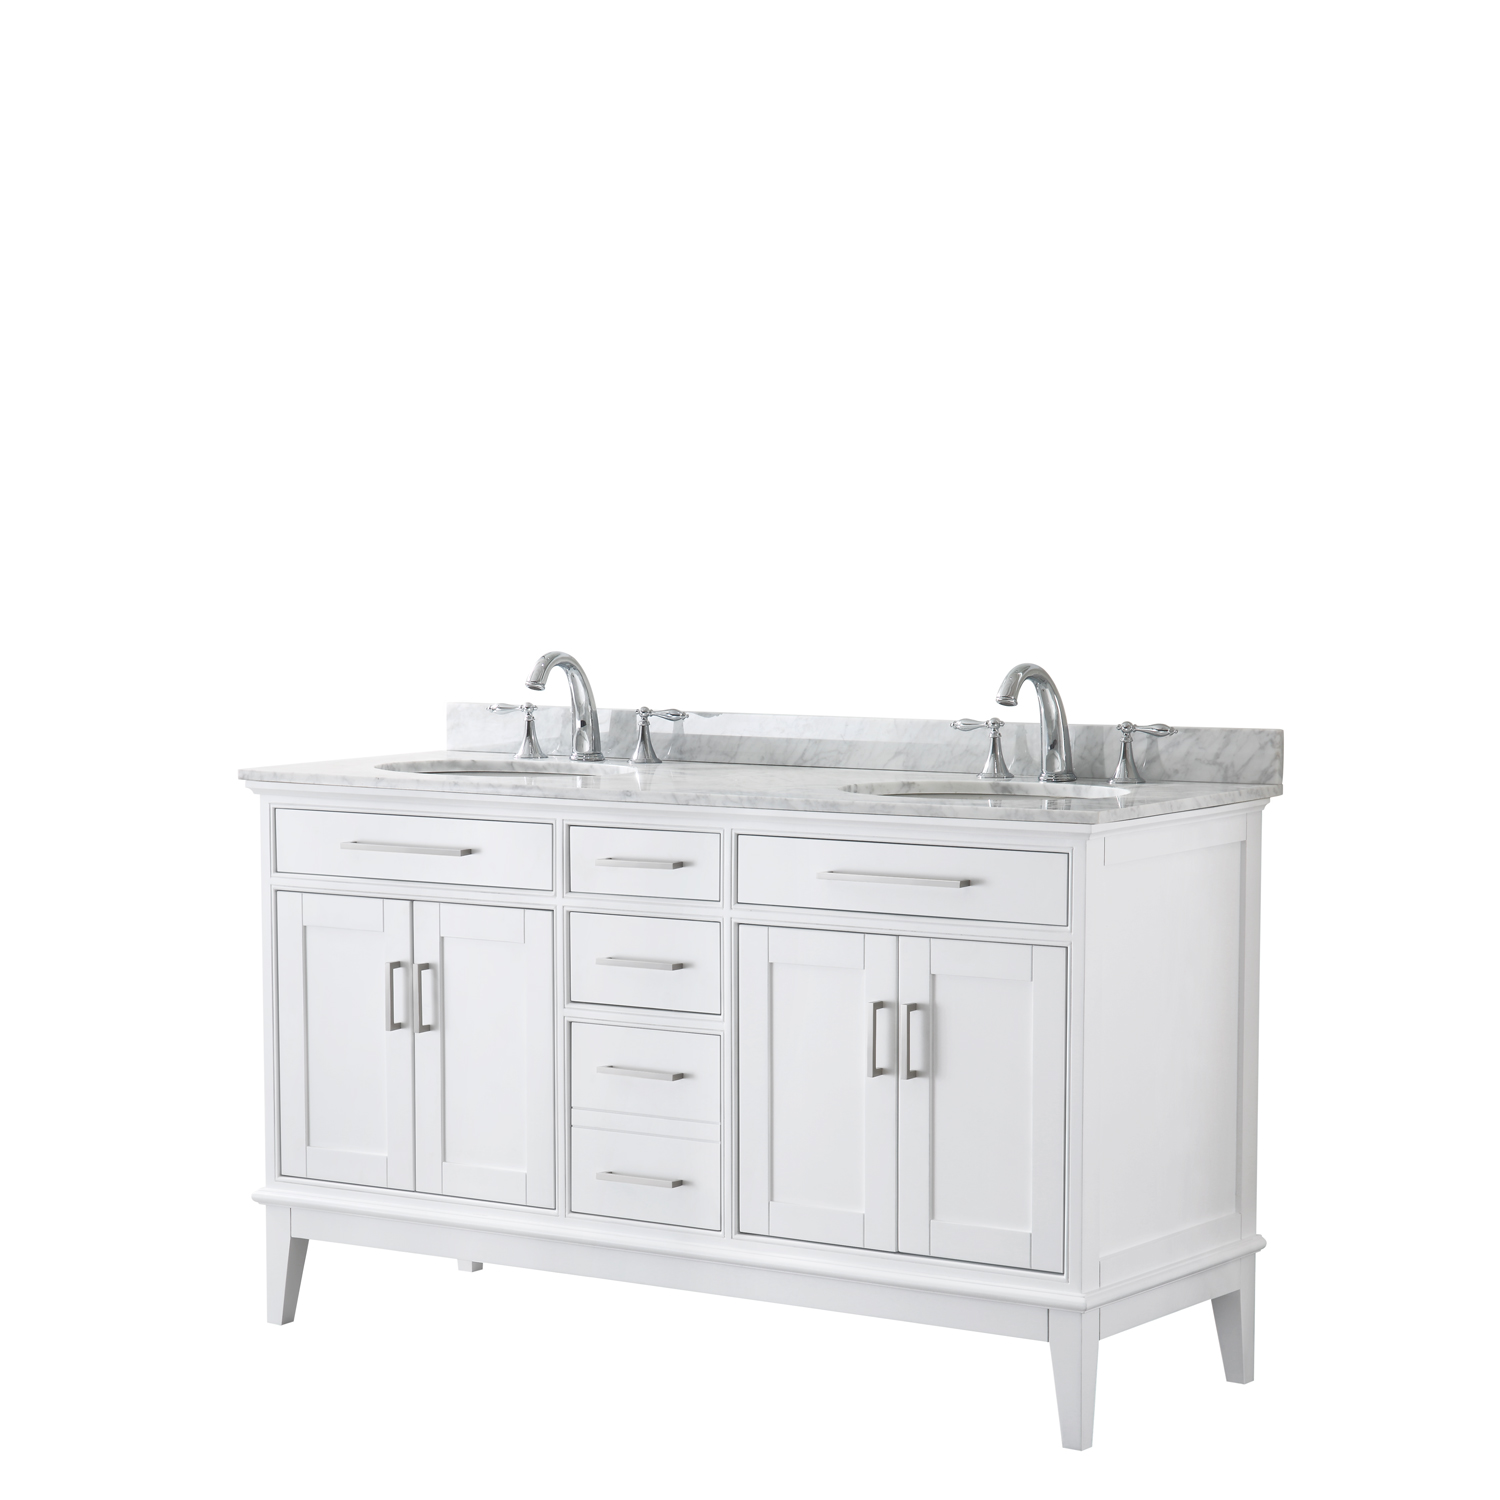 "Contemporary 60"" Double Bathroom Vanity in White, White Carrara Marble Countertop with Undermount Sinks, and Mirror Options"